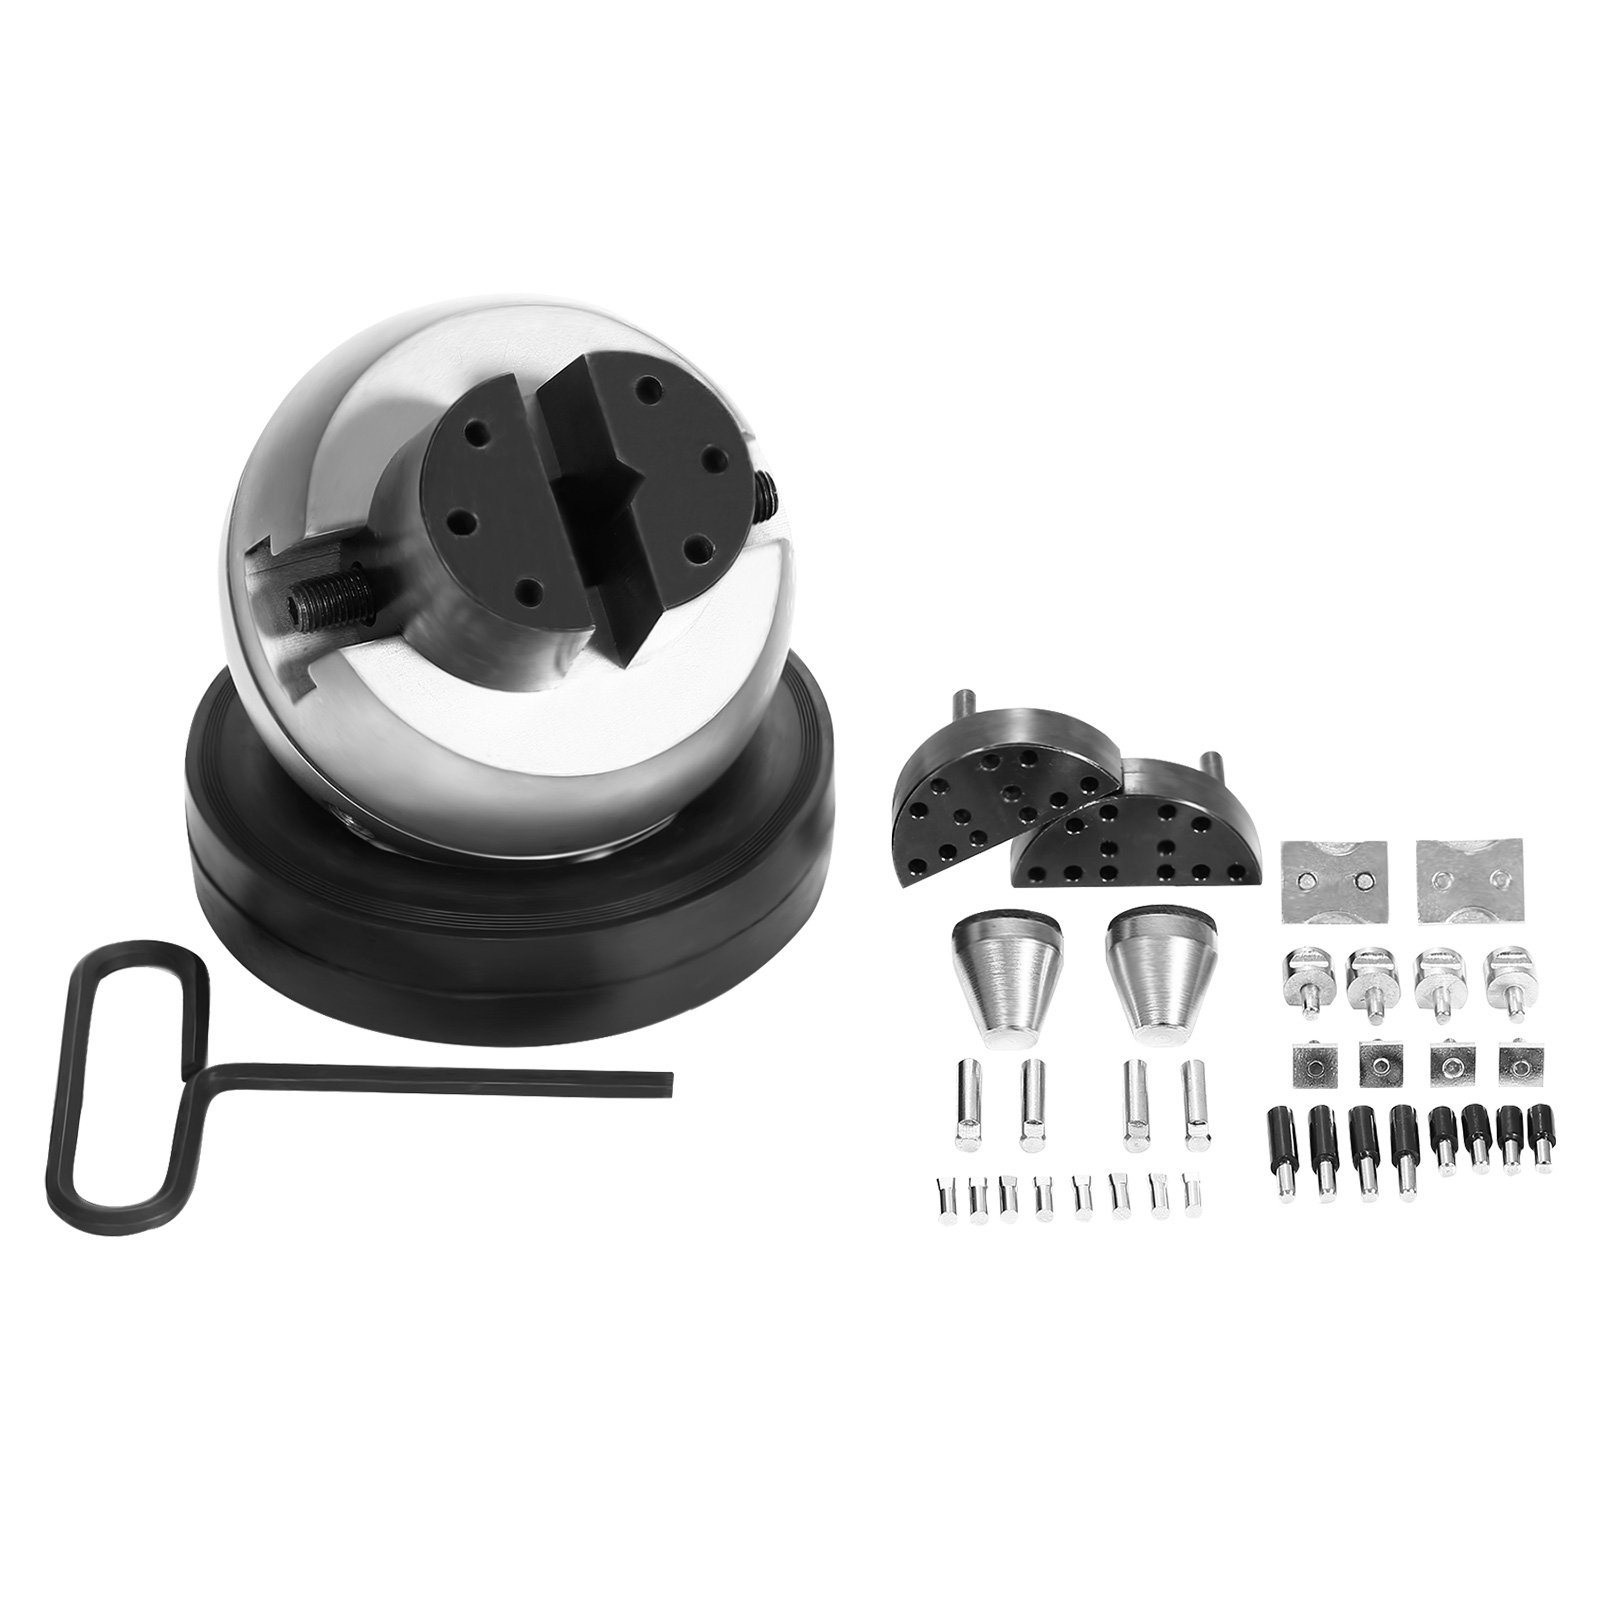 VEVOR Engraving Block 5 inch Ball Vise Setting Jewelry Ball Vise Engraving with 34PCS Attachment and Rubber Base by VEVOR (Image #5)